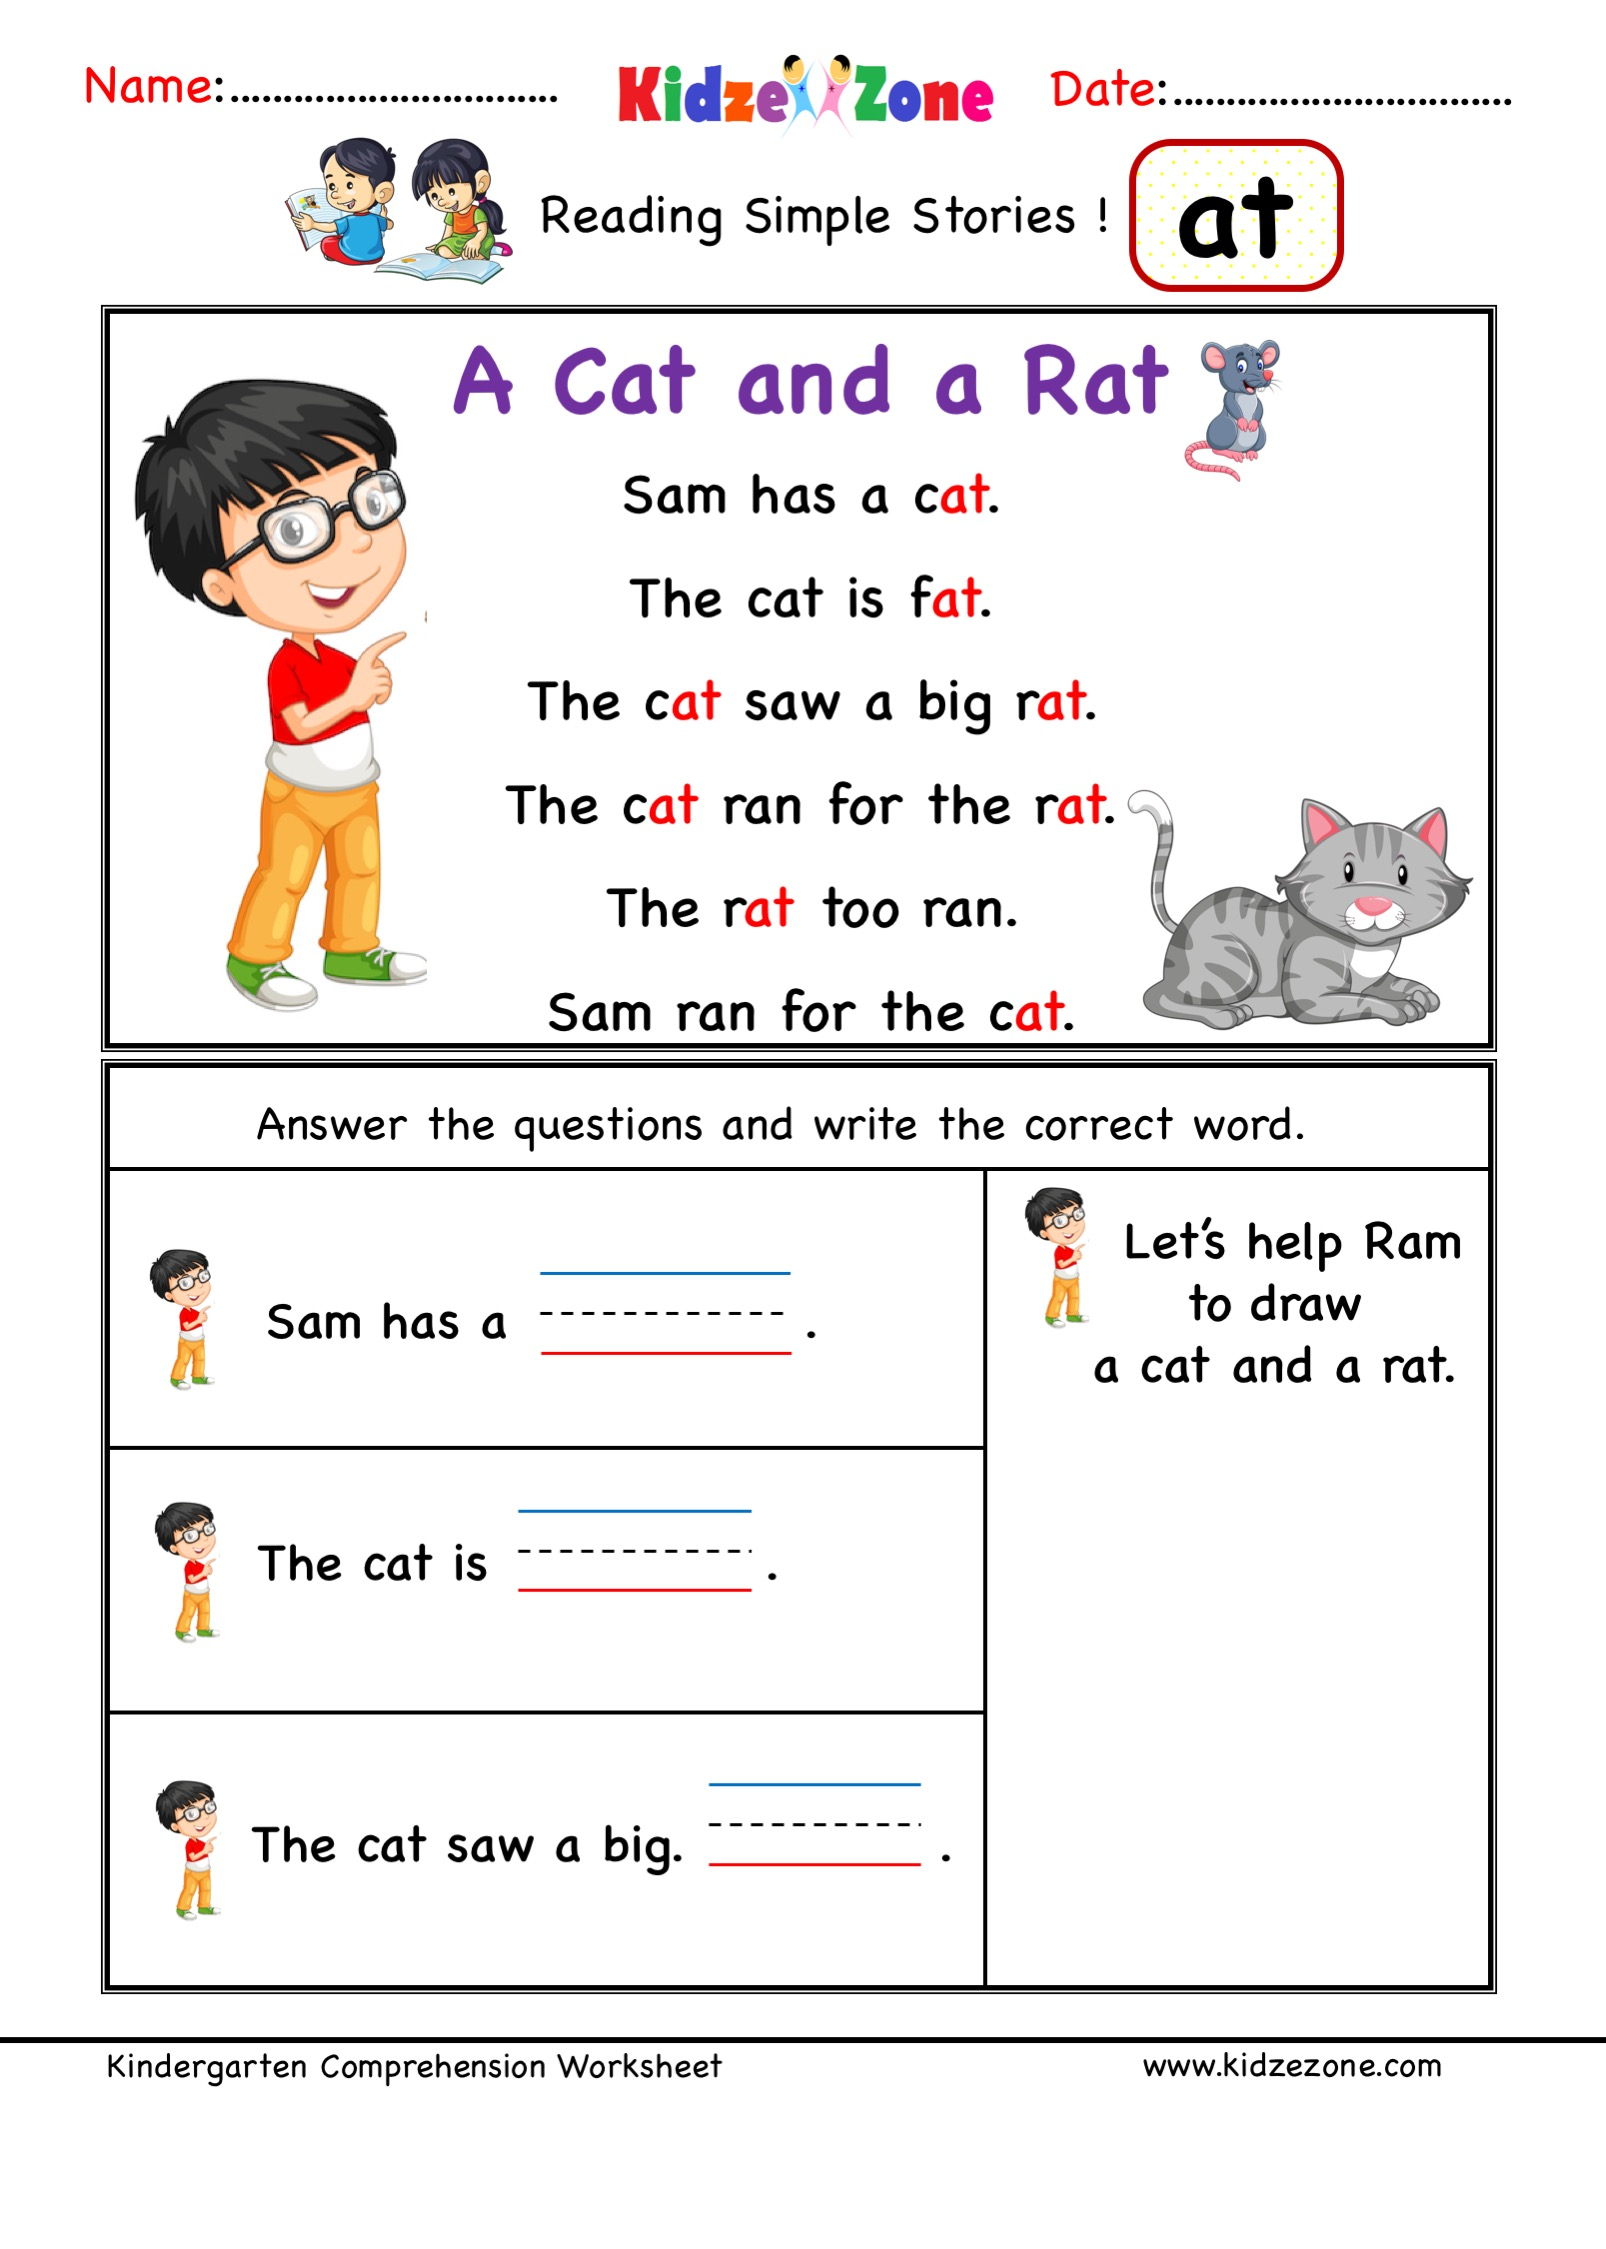 Kindergarten worksheets - at word family reading Comprehension